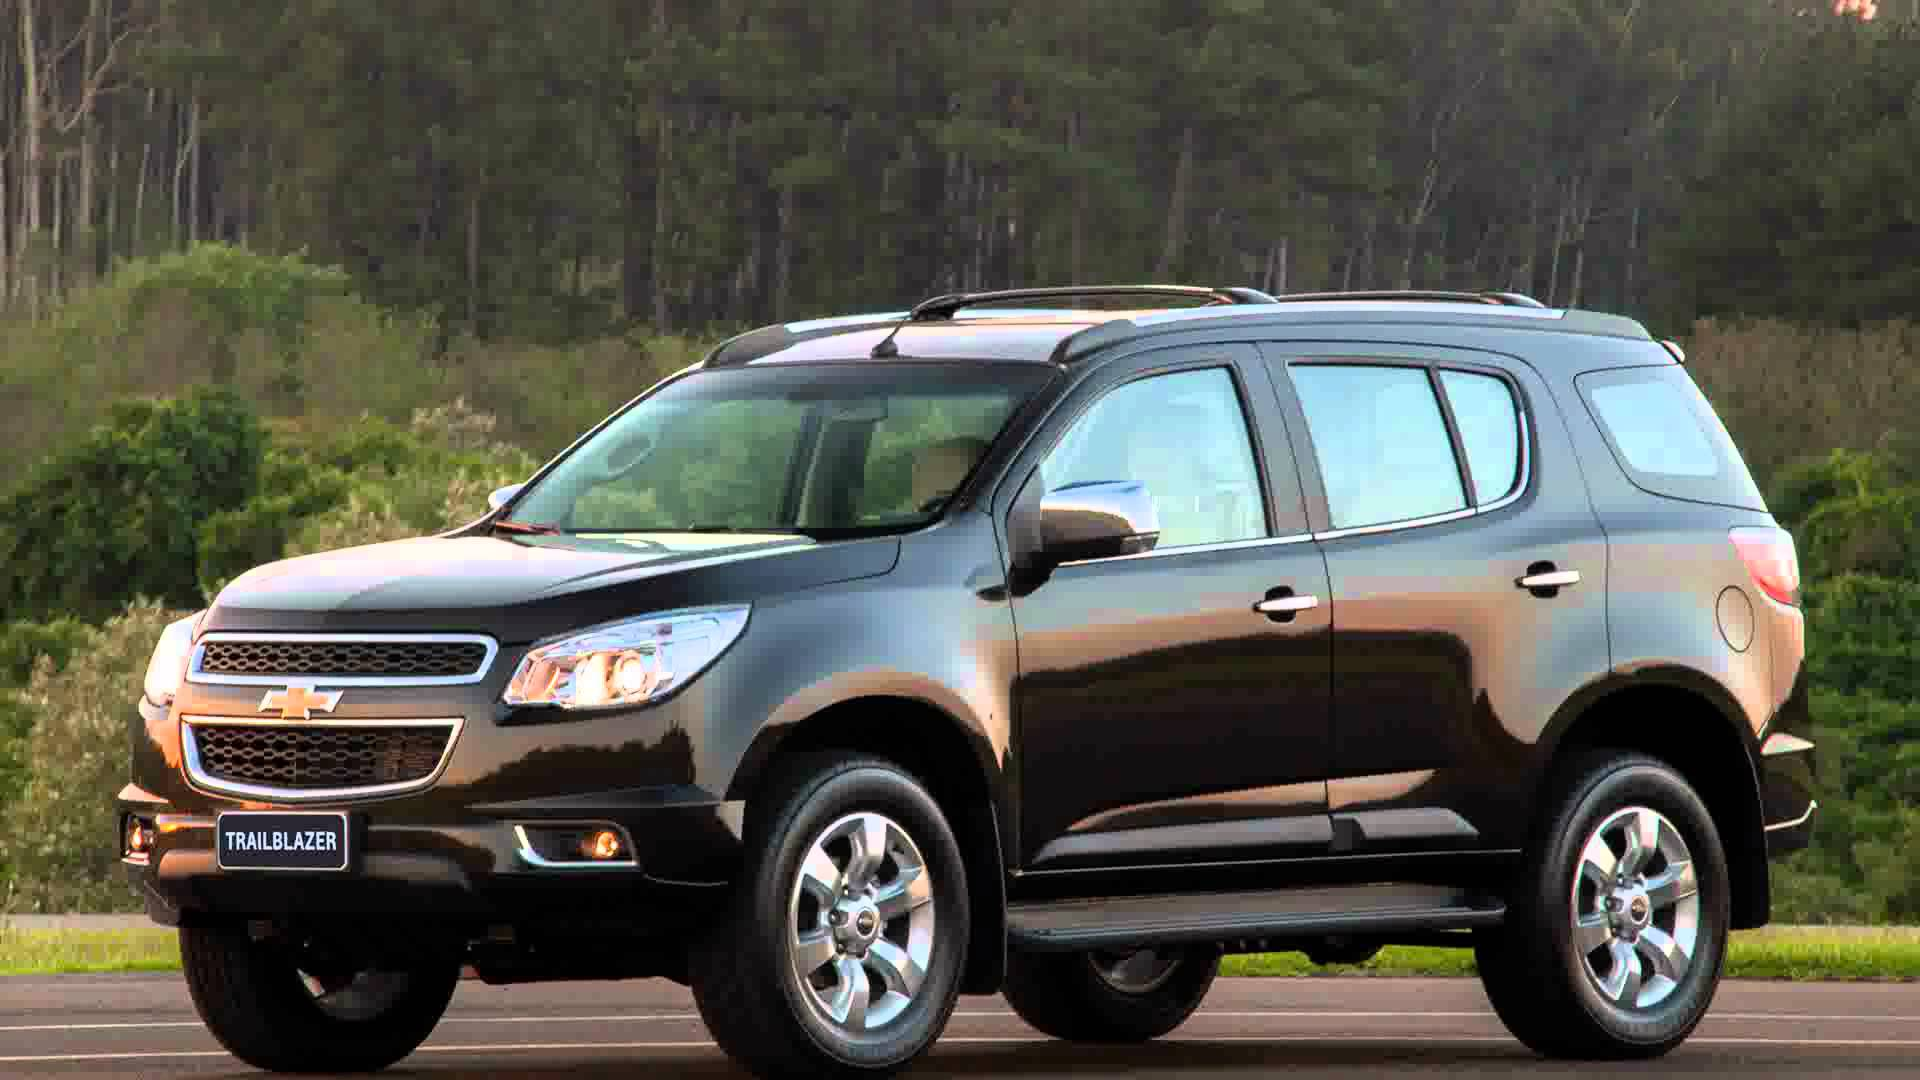 2015 Chevrolet Trailblazer